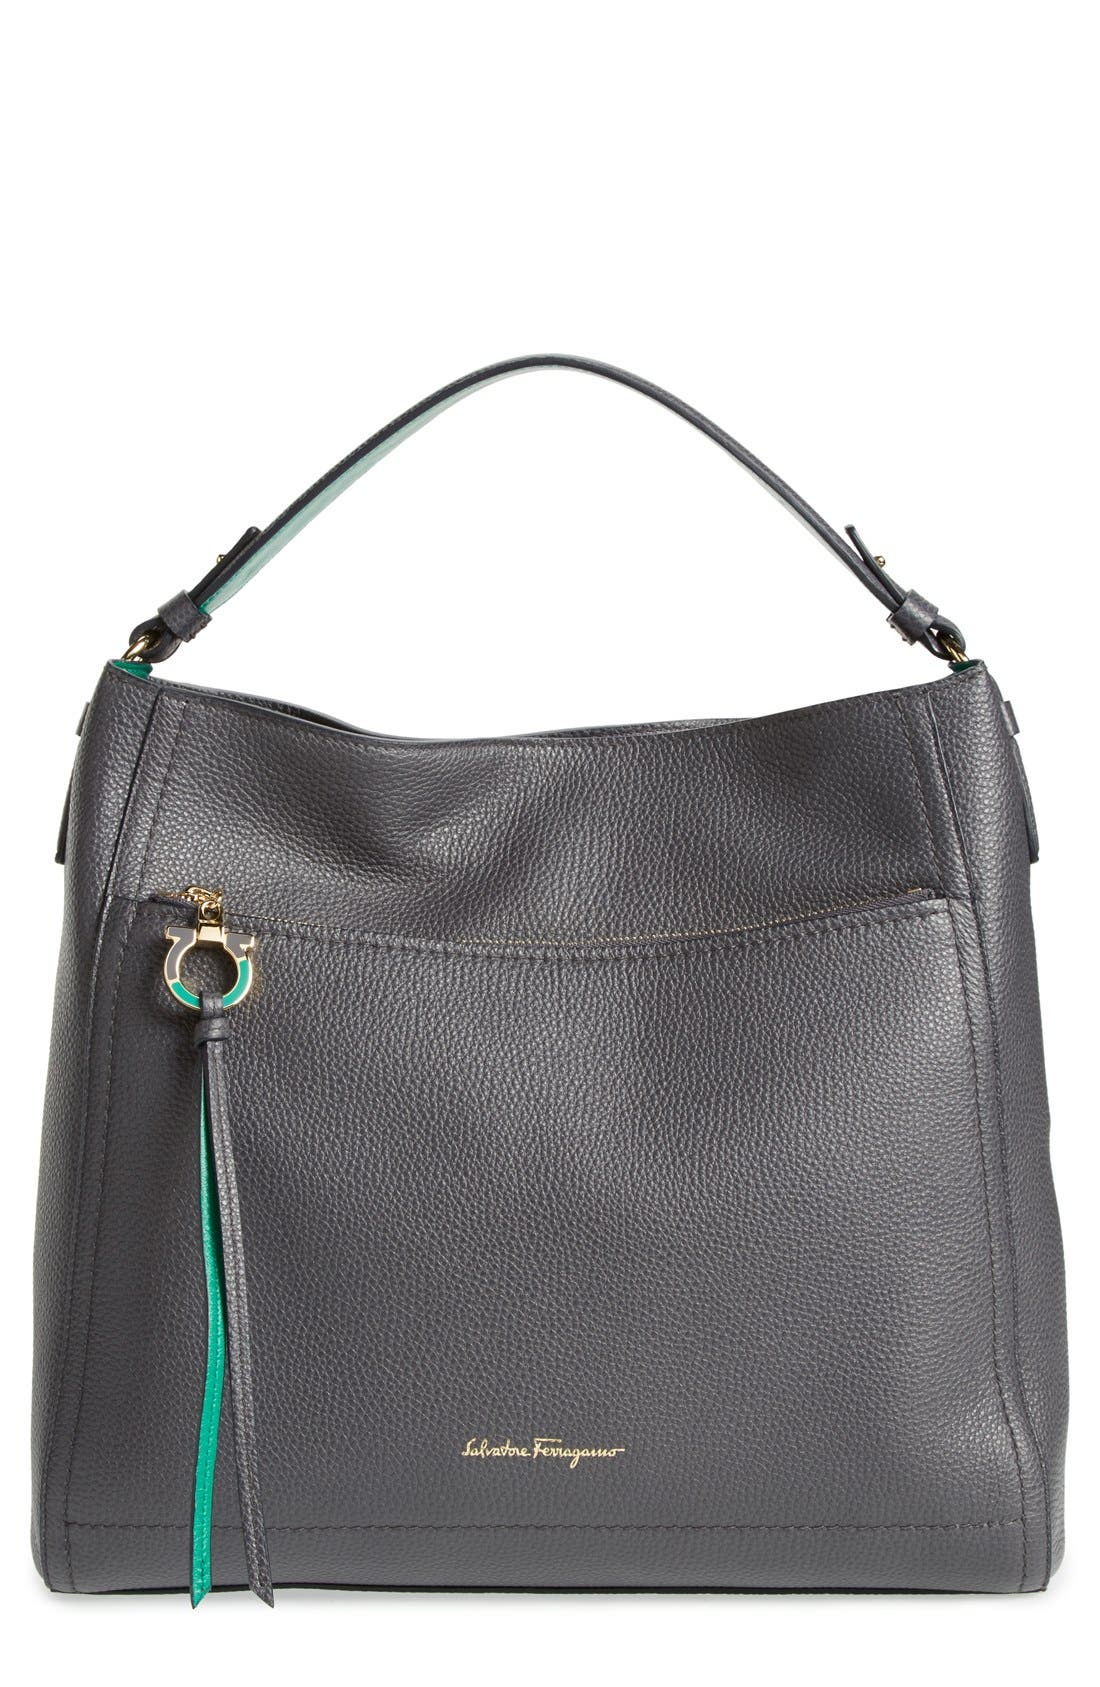 SALVATORE FERRAGAMO, 'Ally' Hobo, Main thumbnail 1, color, 020